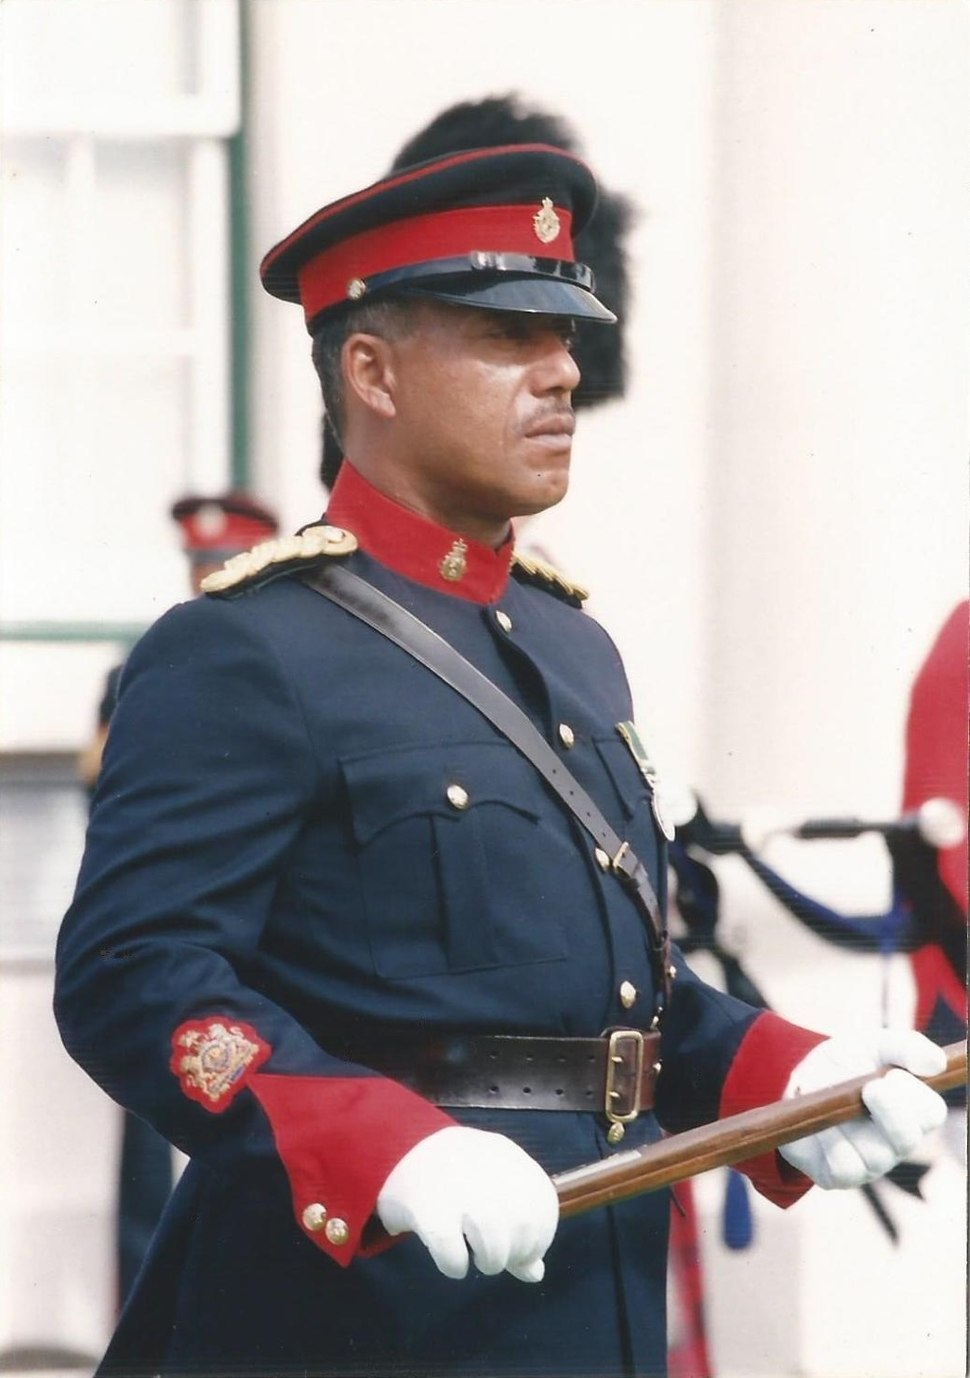 RSM of the Bermuda Regiment 1992